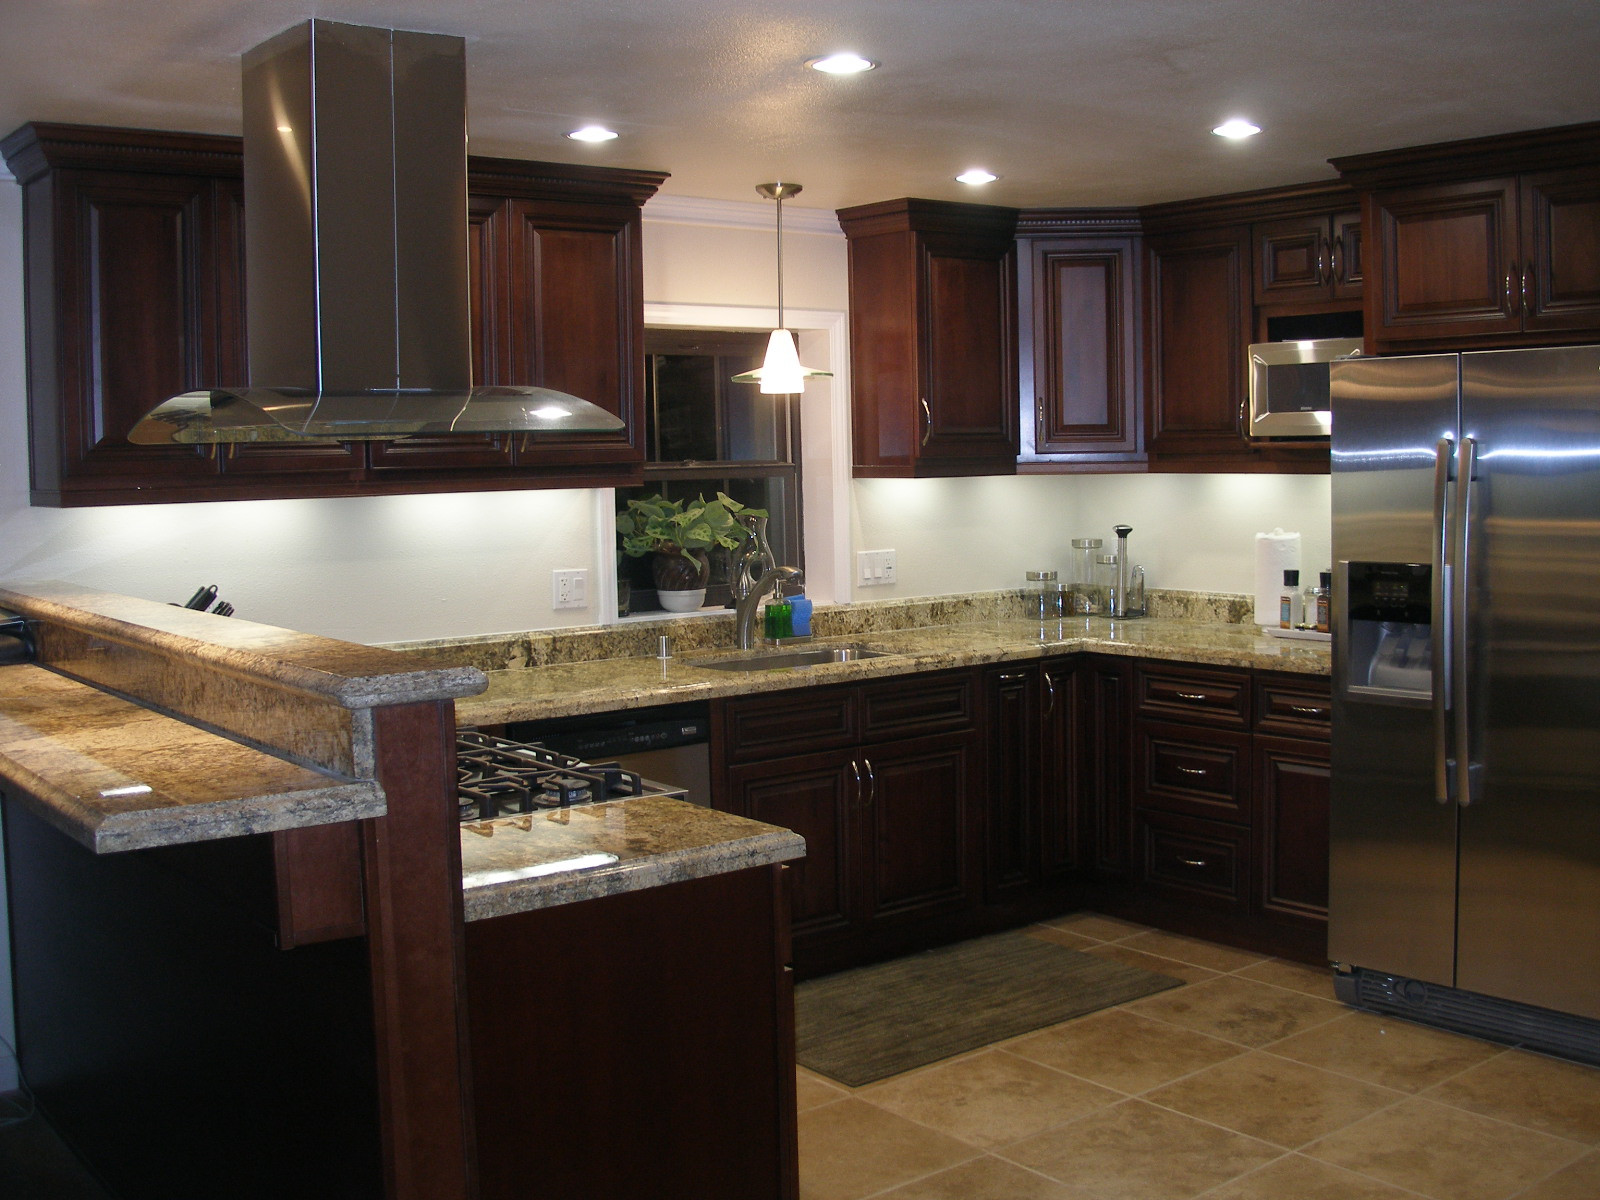 Kitchen remodel bay easy construction for Home improvement ideas for kitchen